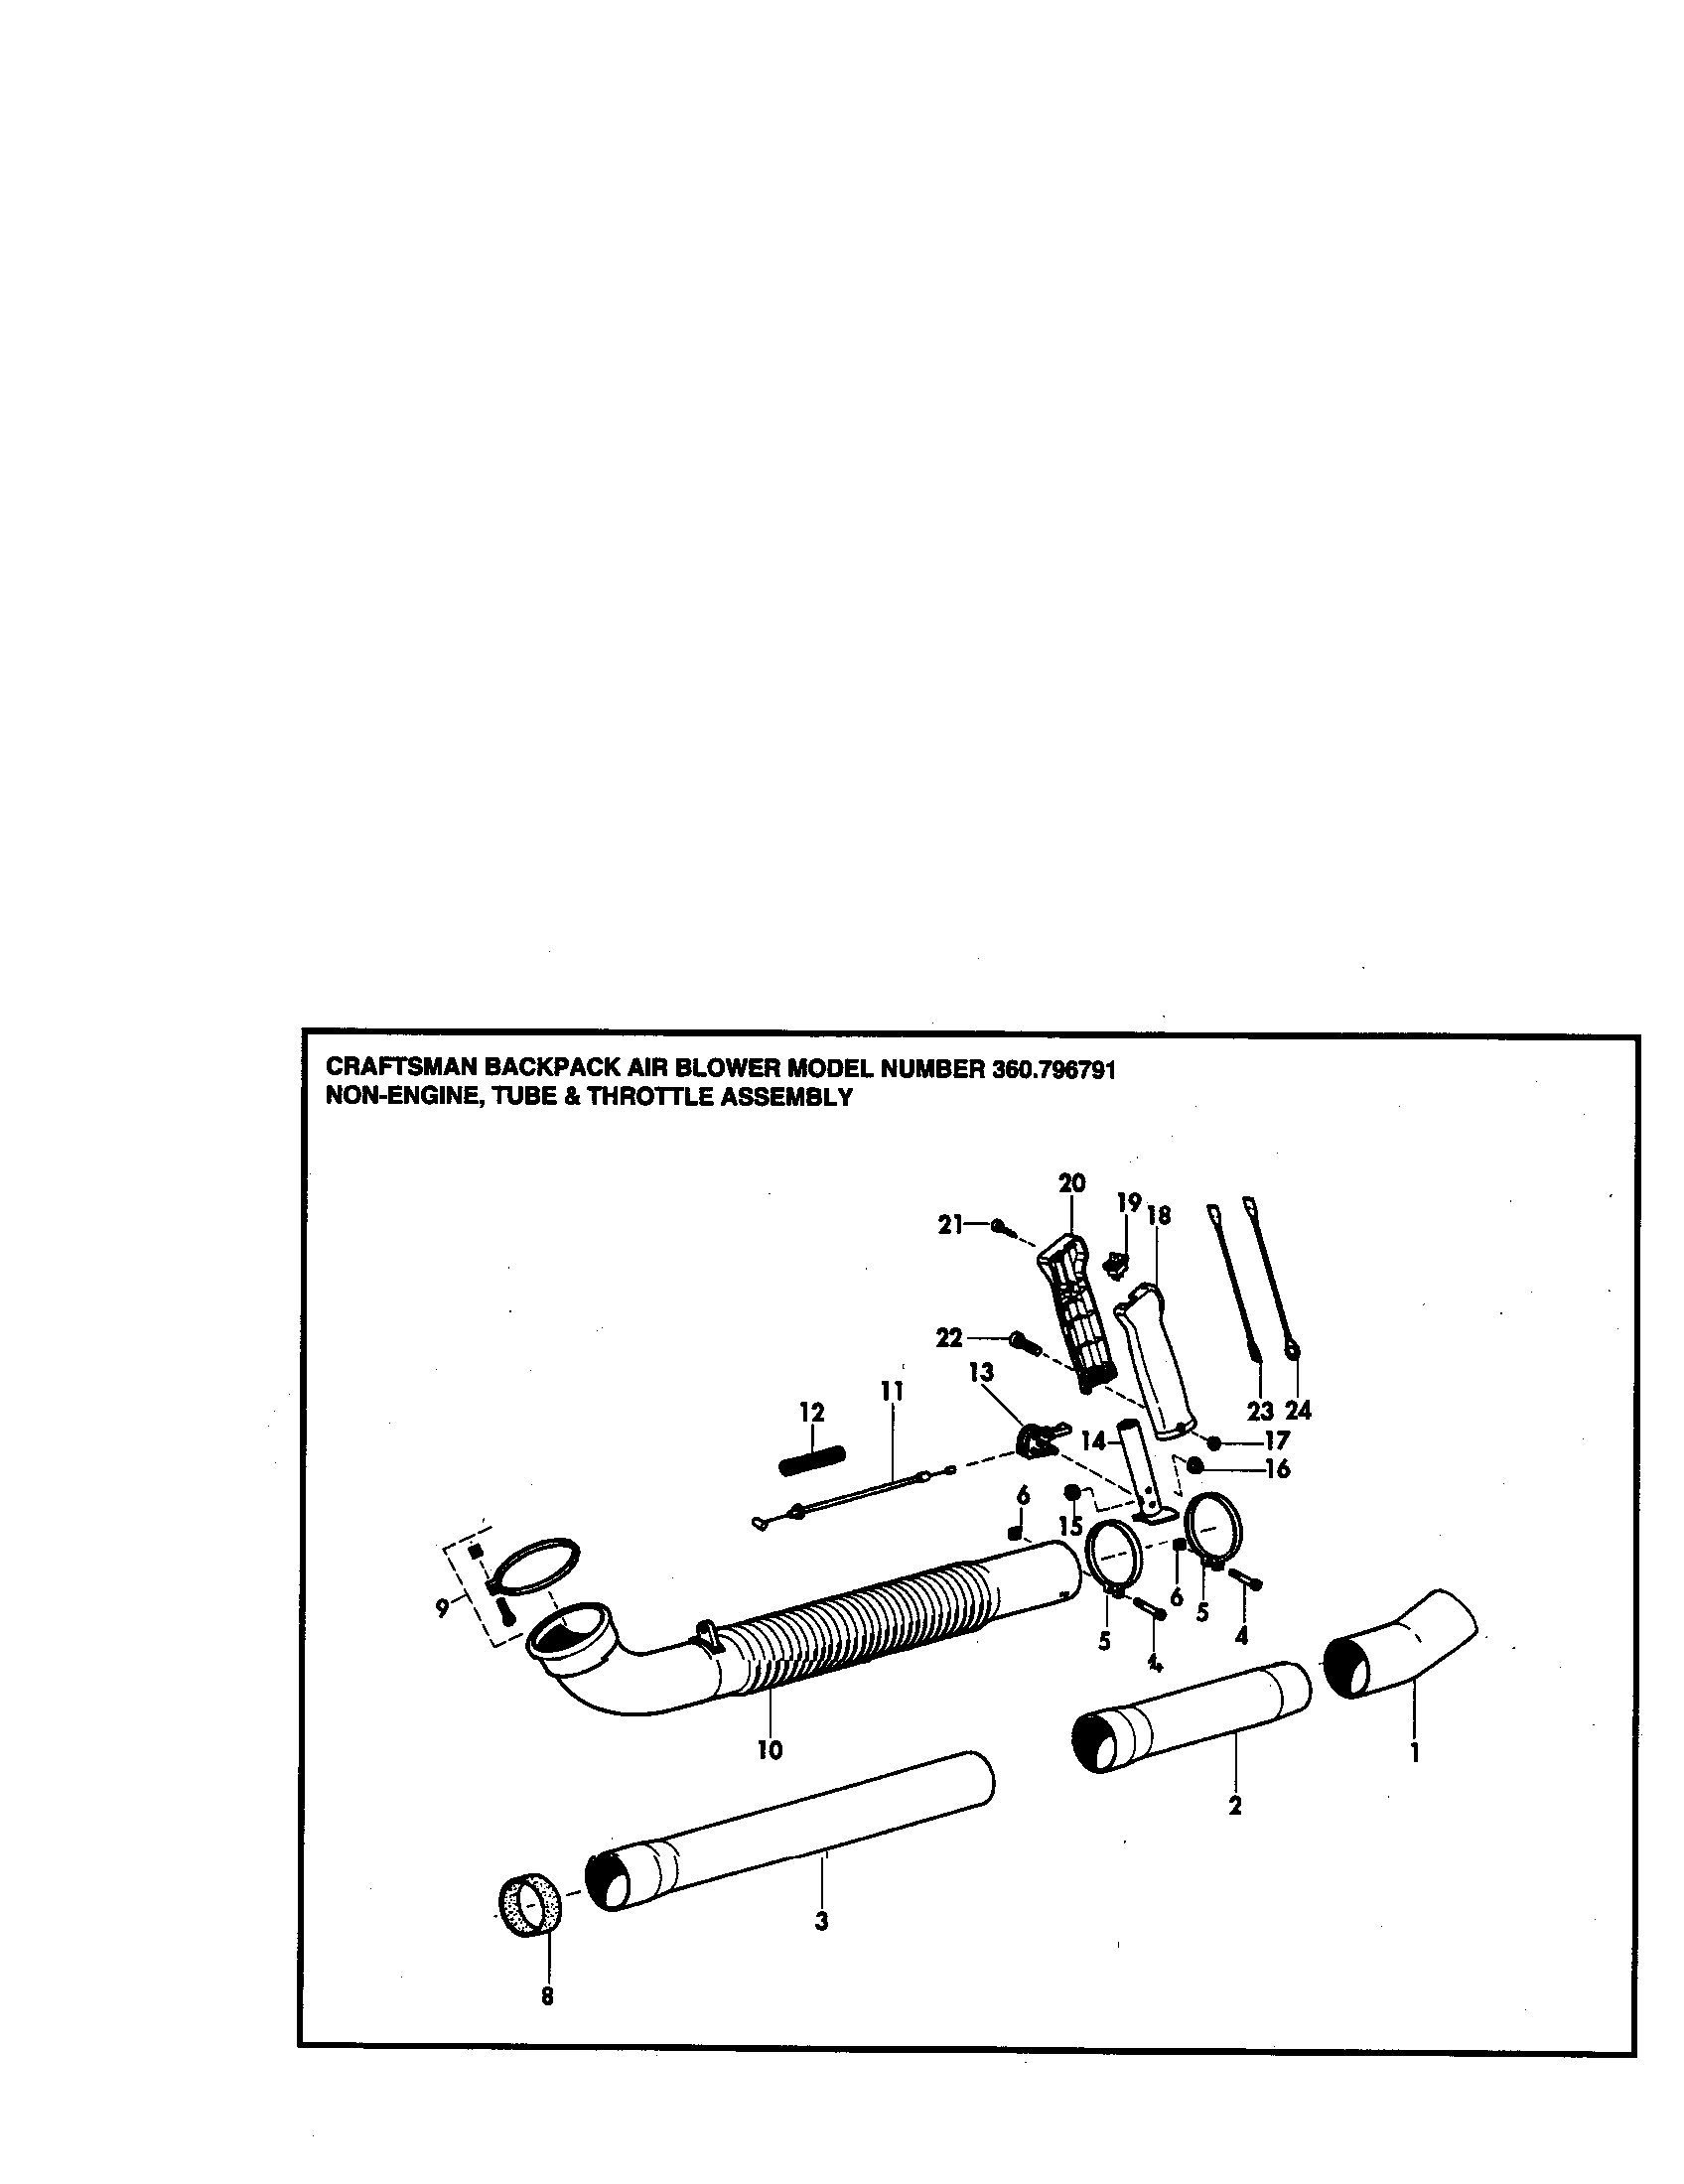 TUBE AND THROTTLE Diagram & Parts List for Model 360796791